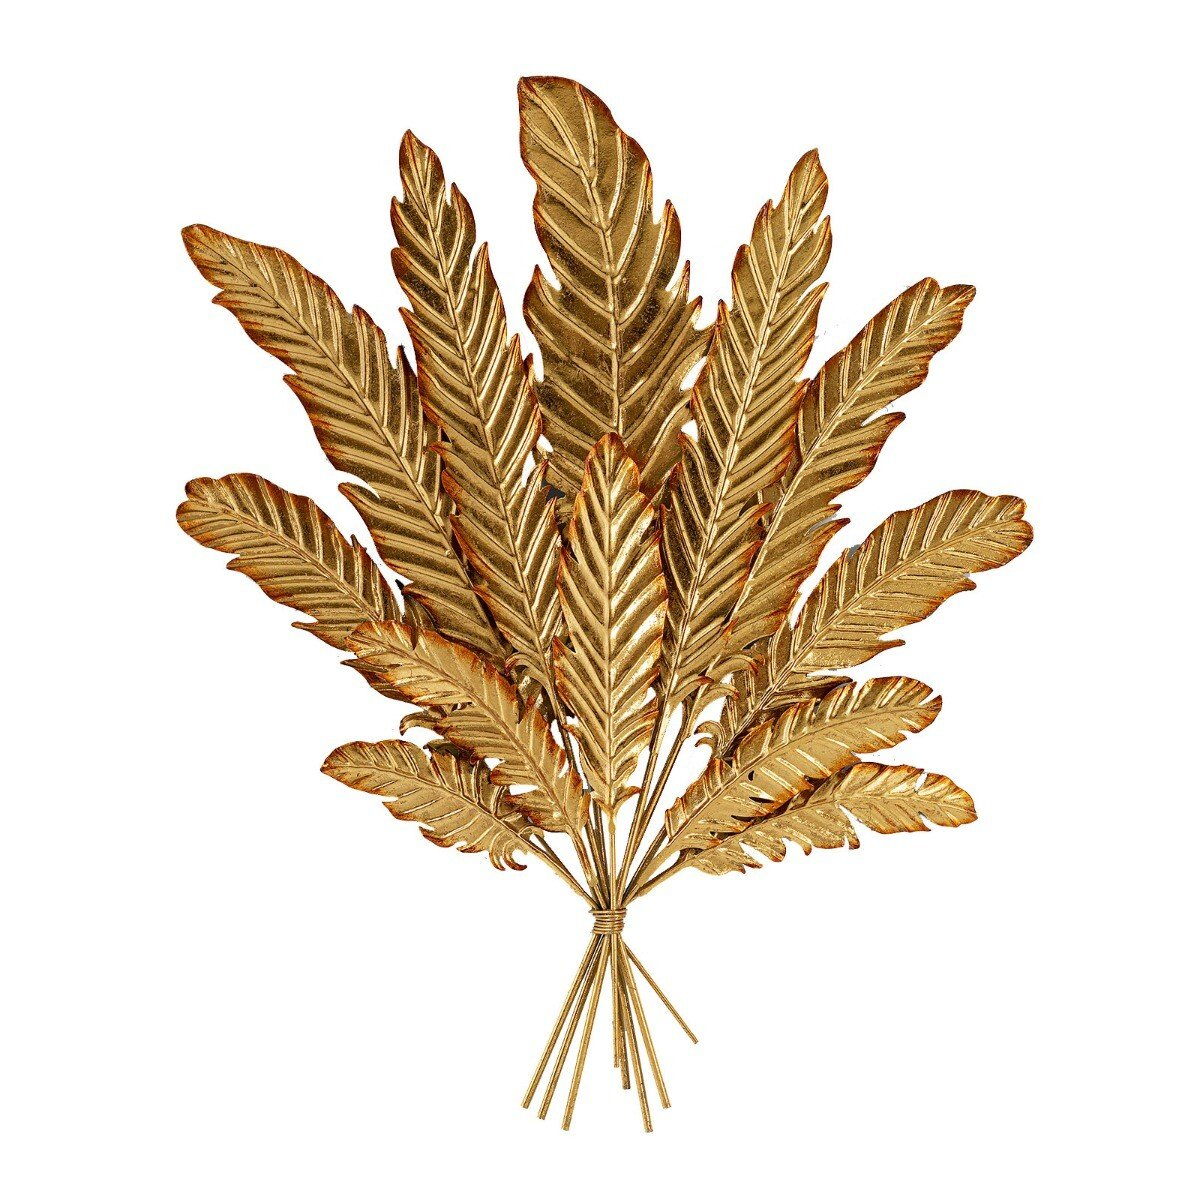 Kare Design wanddecoratie leaf bouquet goud 78,5 x 61 x 4,5